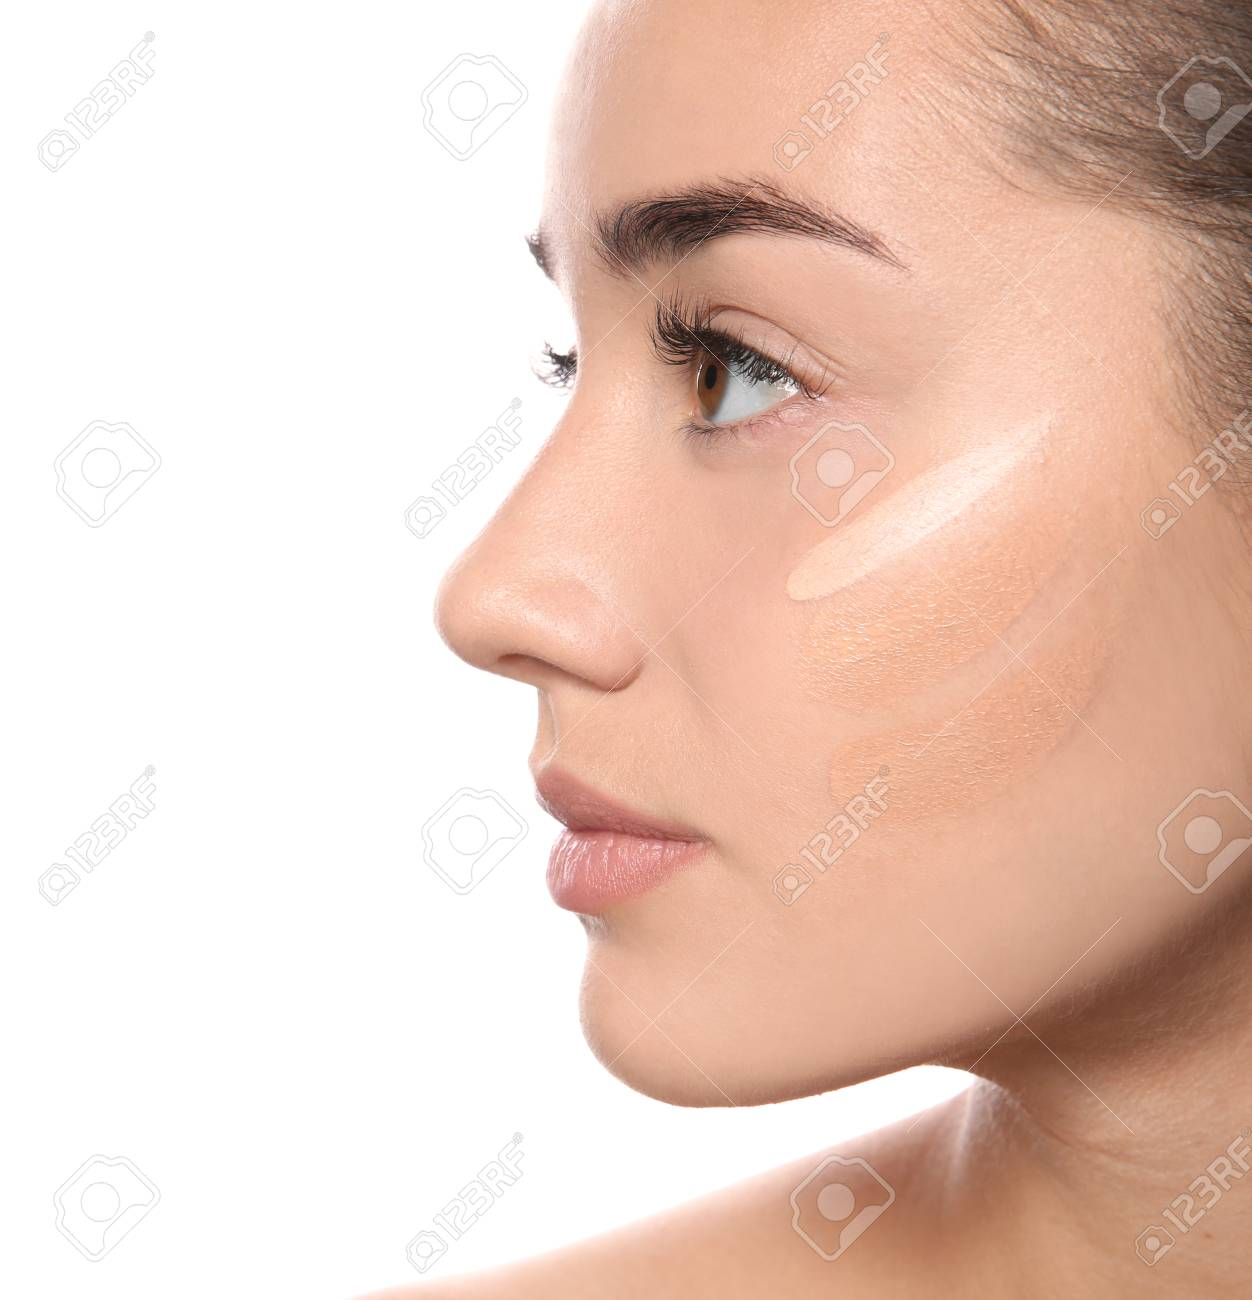 Young Woman With Different Shades Of Skin Foundation On Her Face